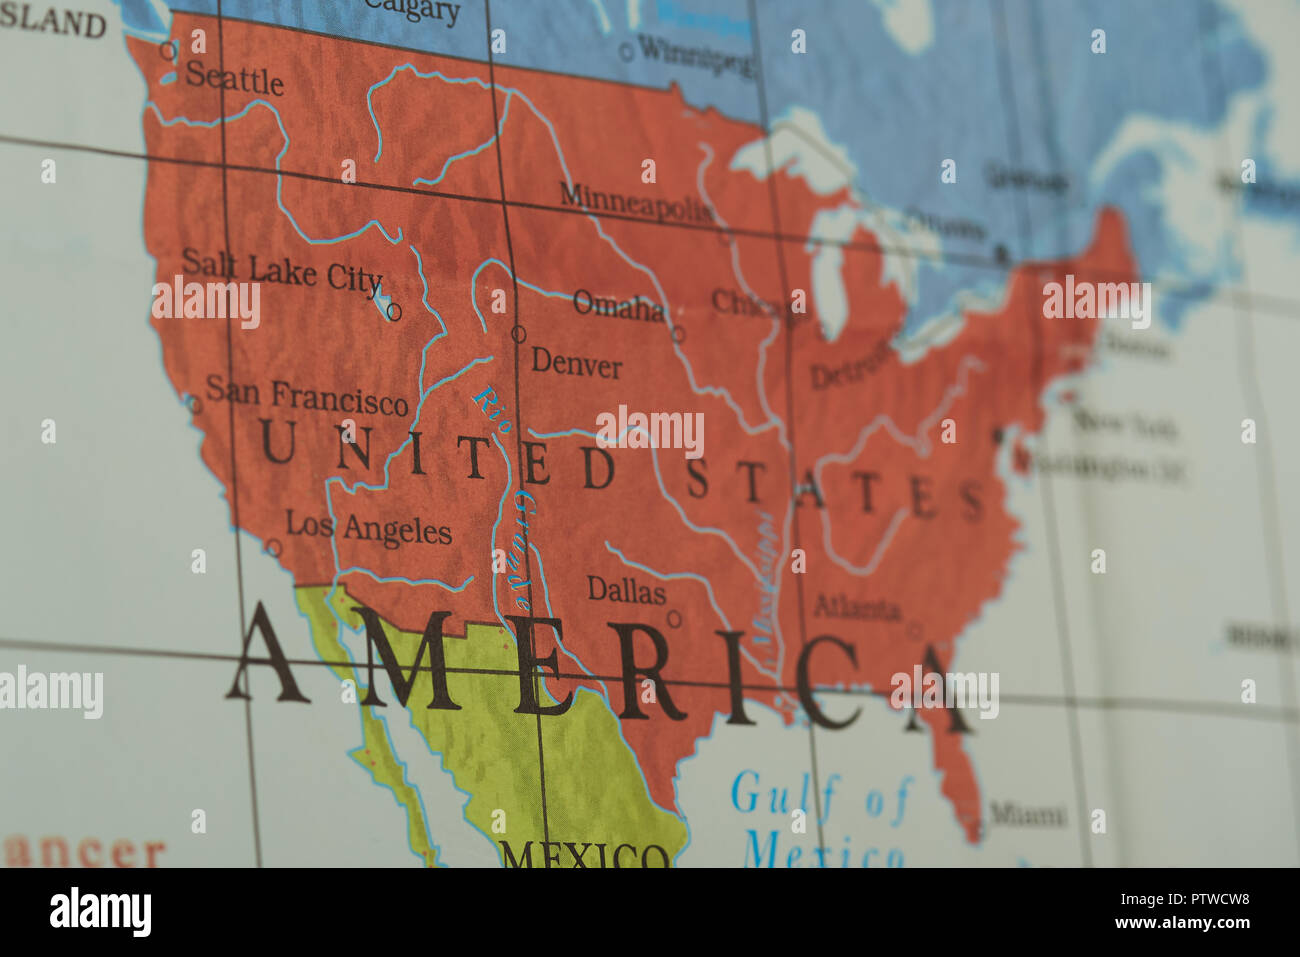 United States Territory Country On Paper Map Close Up View Stock - Us-map-close-up